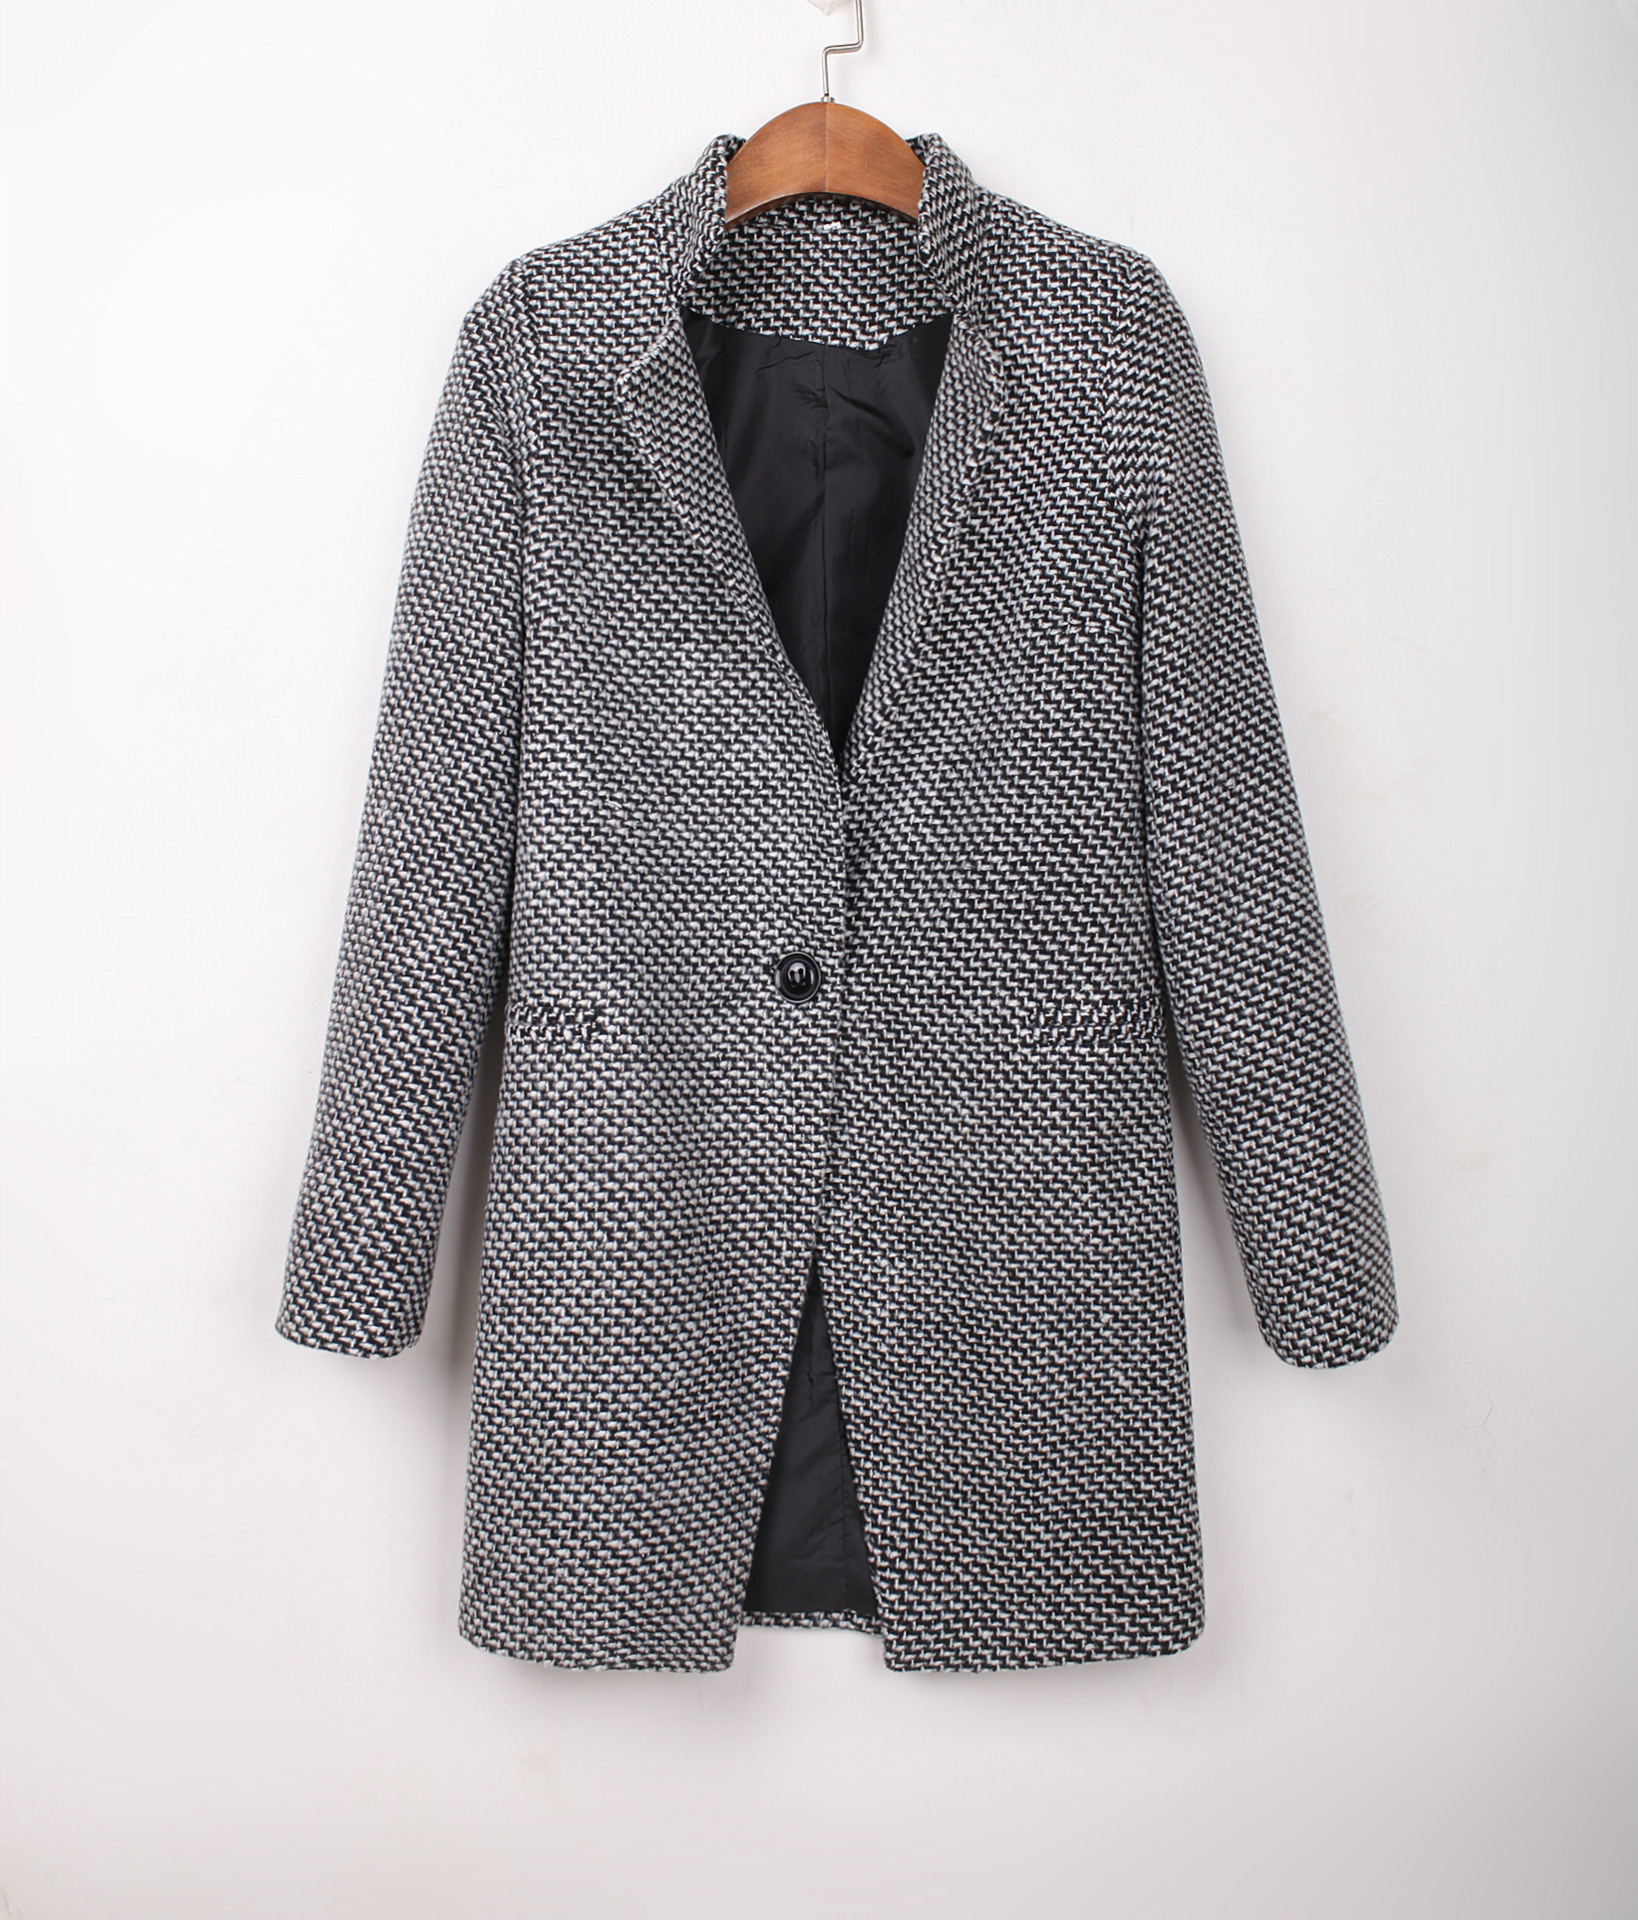 2ee3bf41f8e Plus Size S-4XL Top quality low price Women Grey Tweed Long Sleeve Single  Button wool overcoat Trench Coat Jacket abrigos mujer